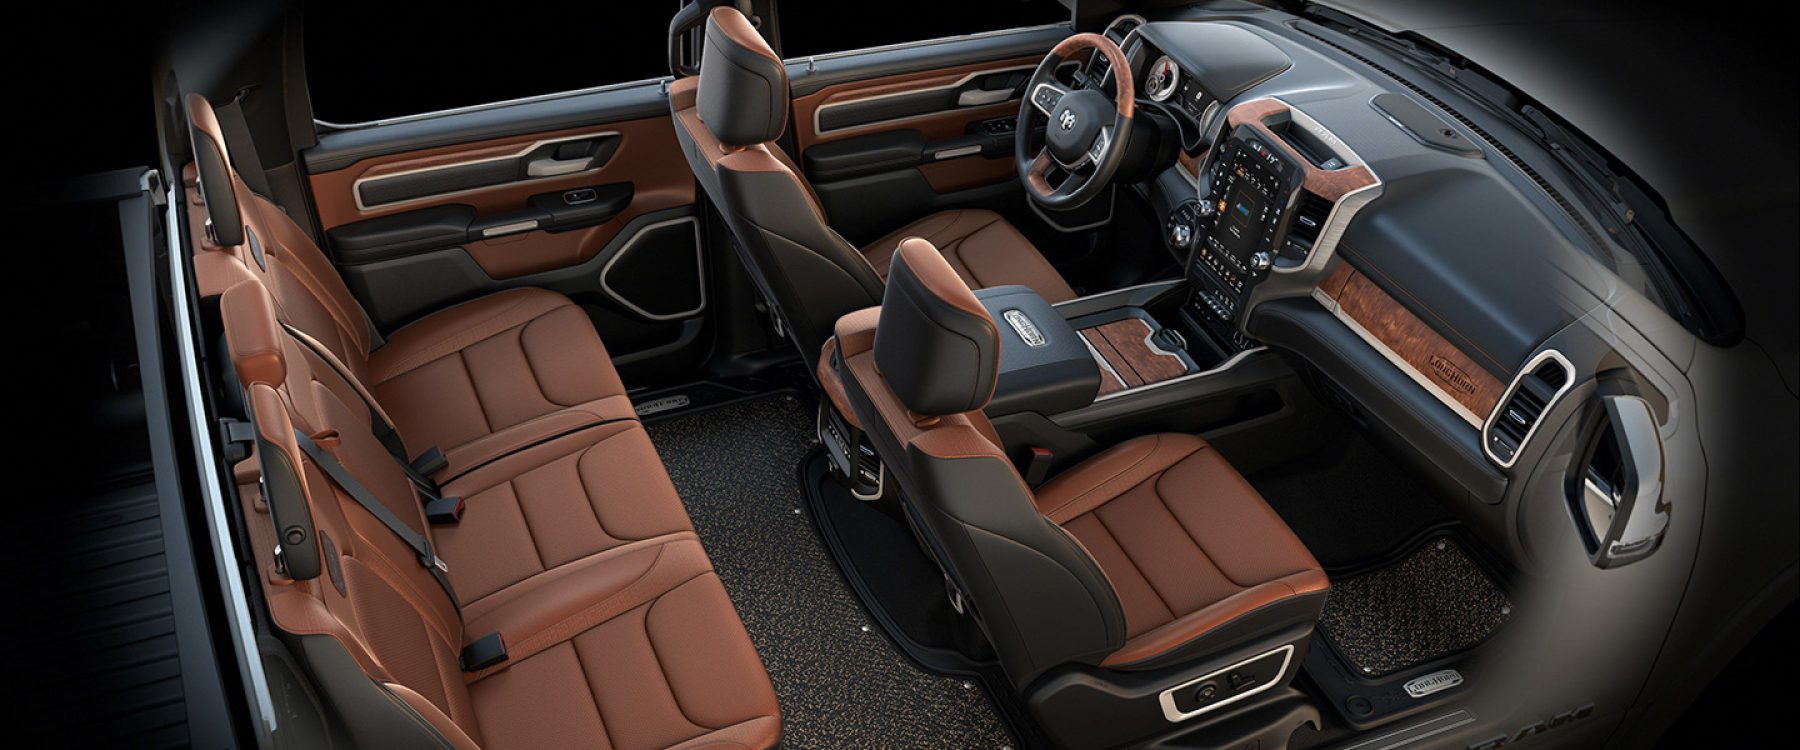 2019 Ram 1500 Interior Seats Longhorn black cattle tan